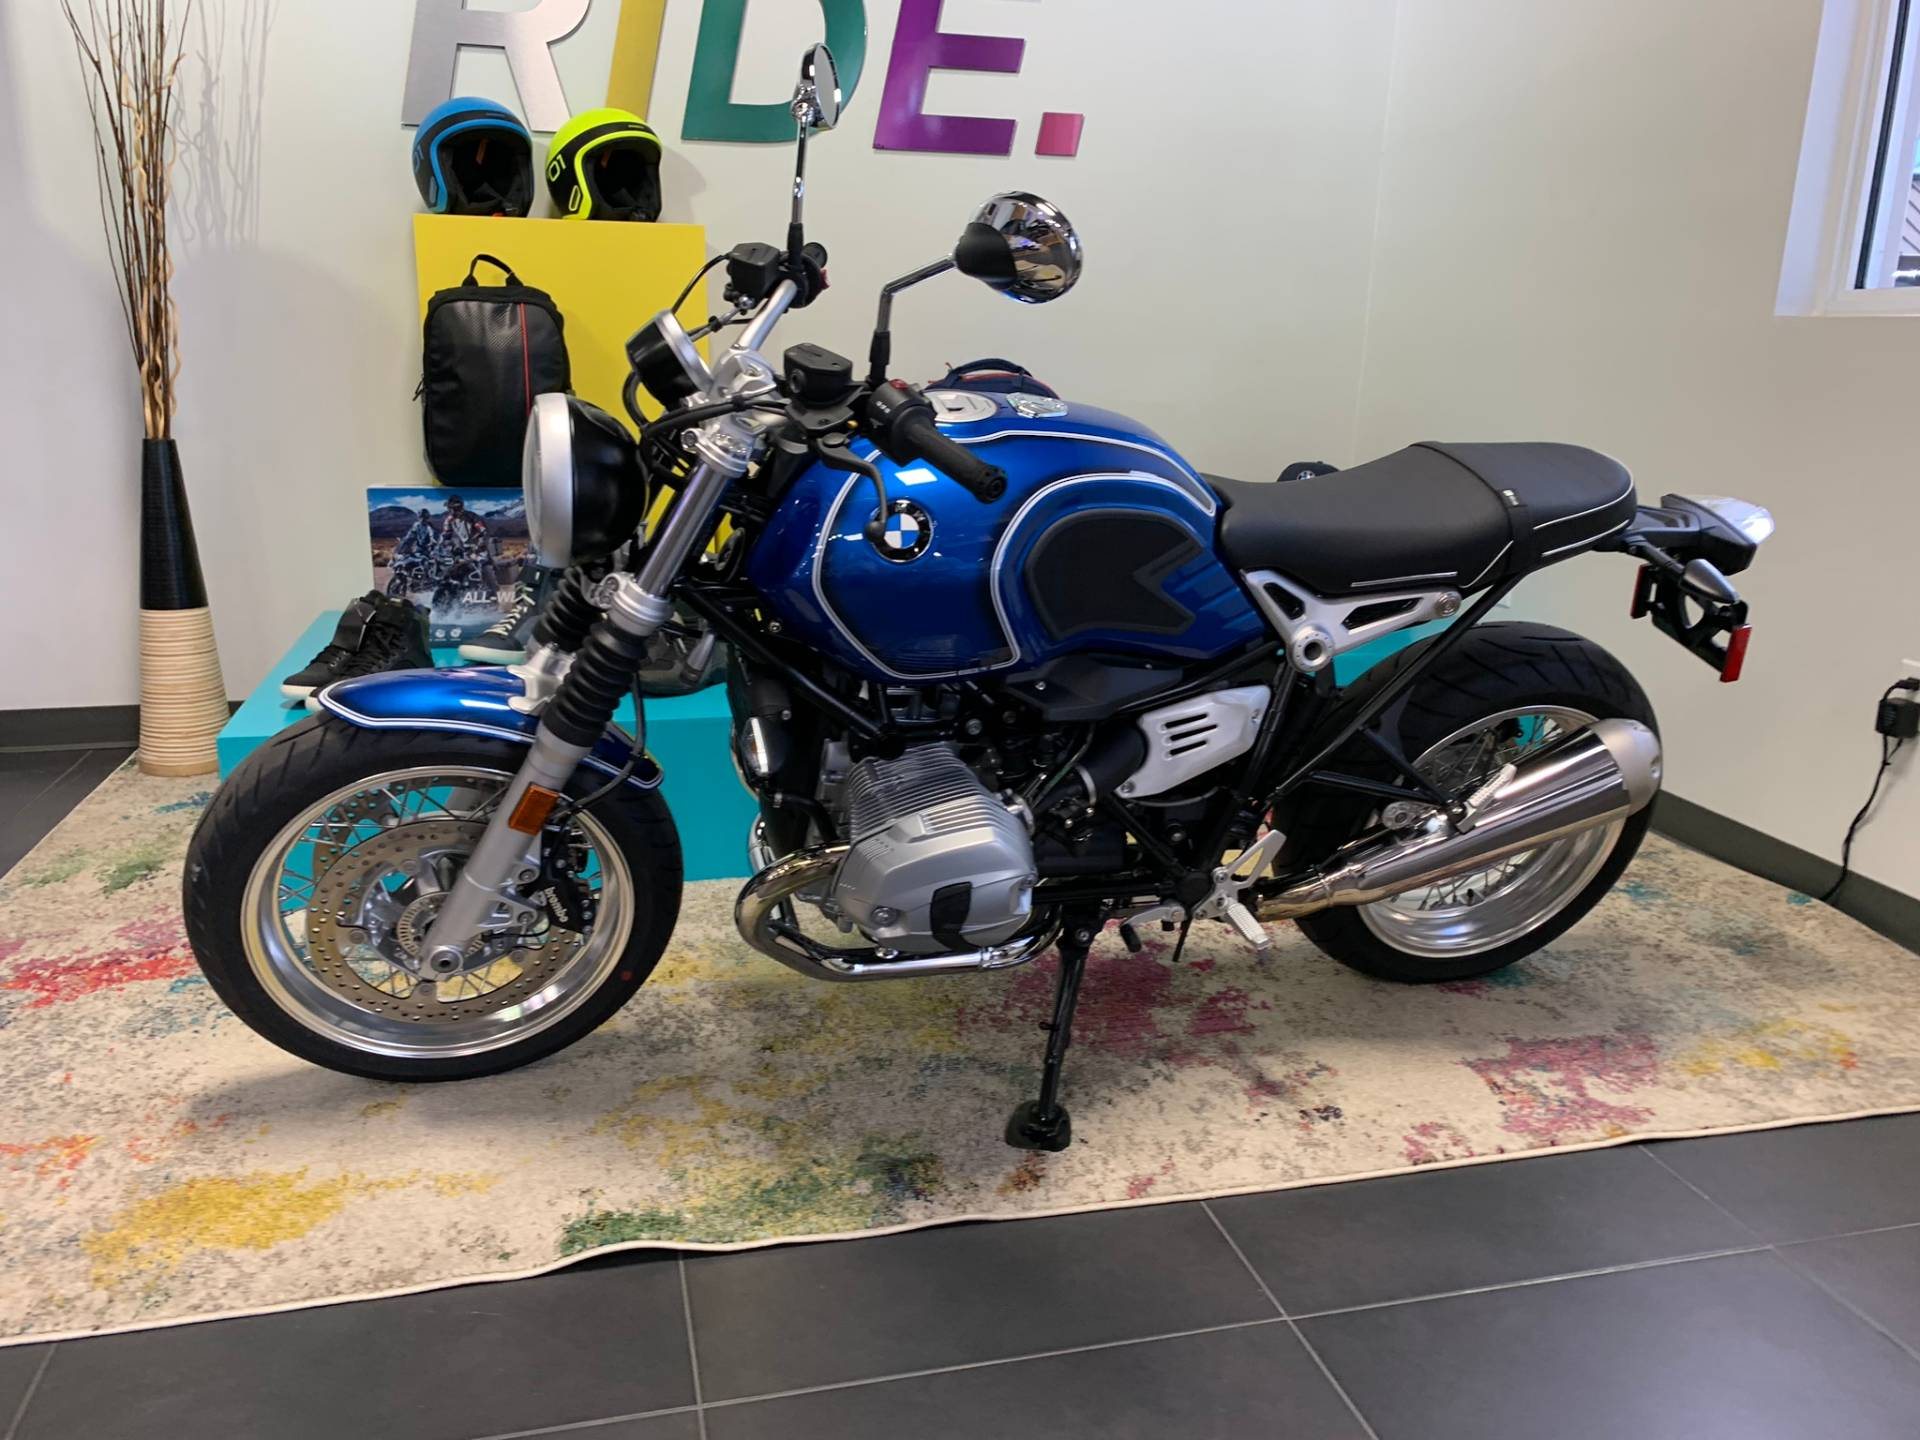 New 2020 2019 BMW R NineT for sale, BMW for sale, BMW Motorcycle Café Racer, new BMW Caffe, Cafe Racer, BMW. BMW Motorcycles of Miami, Motorcycles of Miami, Motorcycles Miami, New Motorcycles, Used Motorcycles, pre-owned. #BMWMotorcyclesOfMiami #MotorcyclesOfMiami. - Photo 34